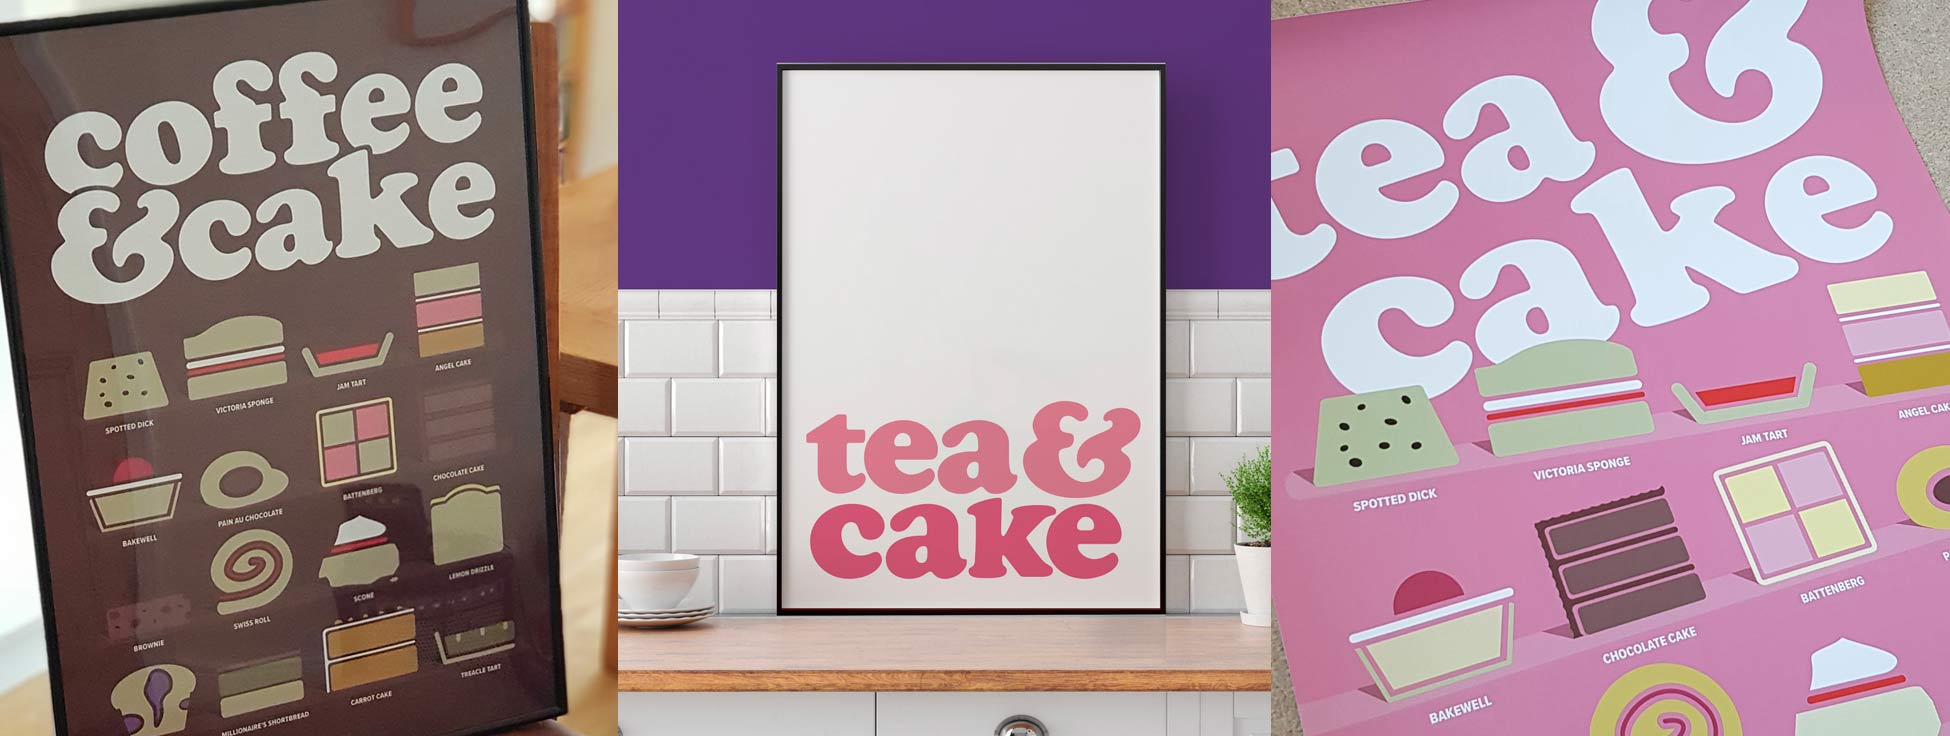 Tea Coffee and Cake posters